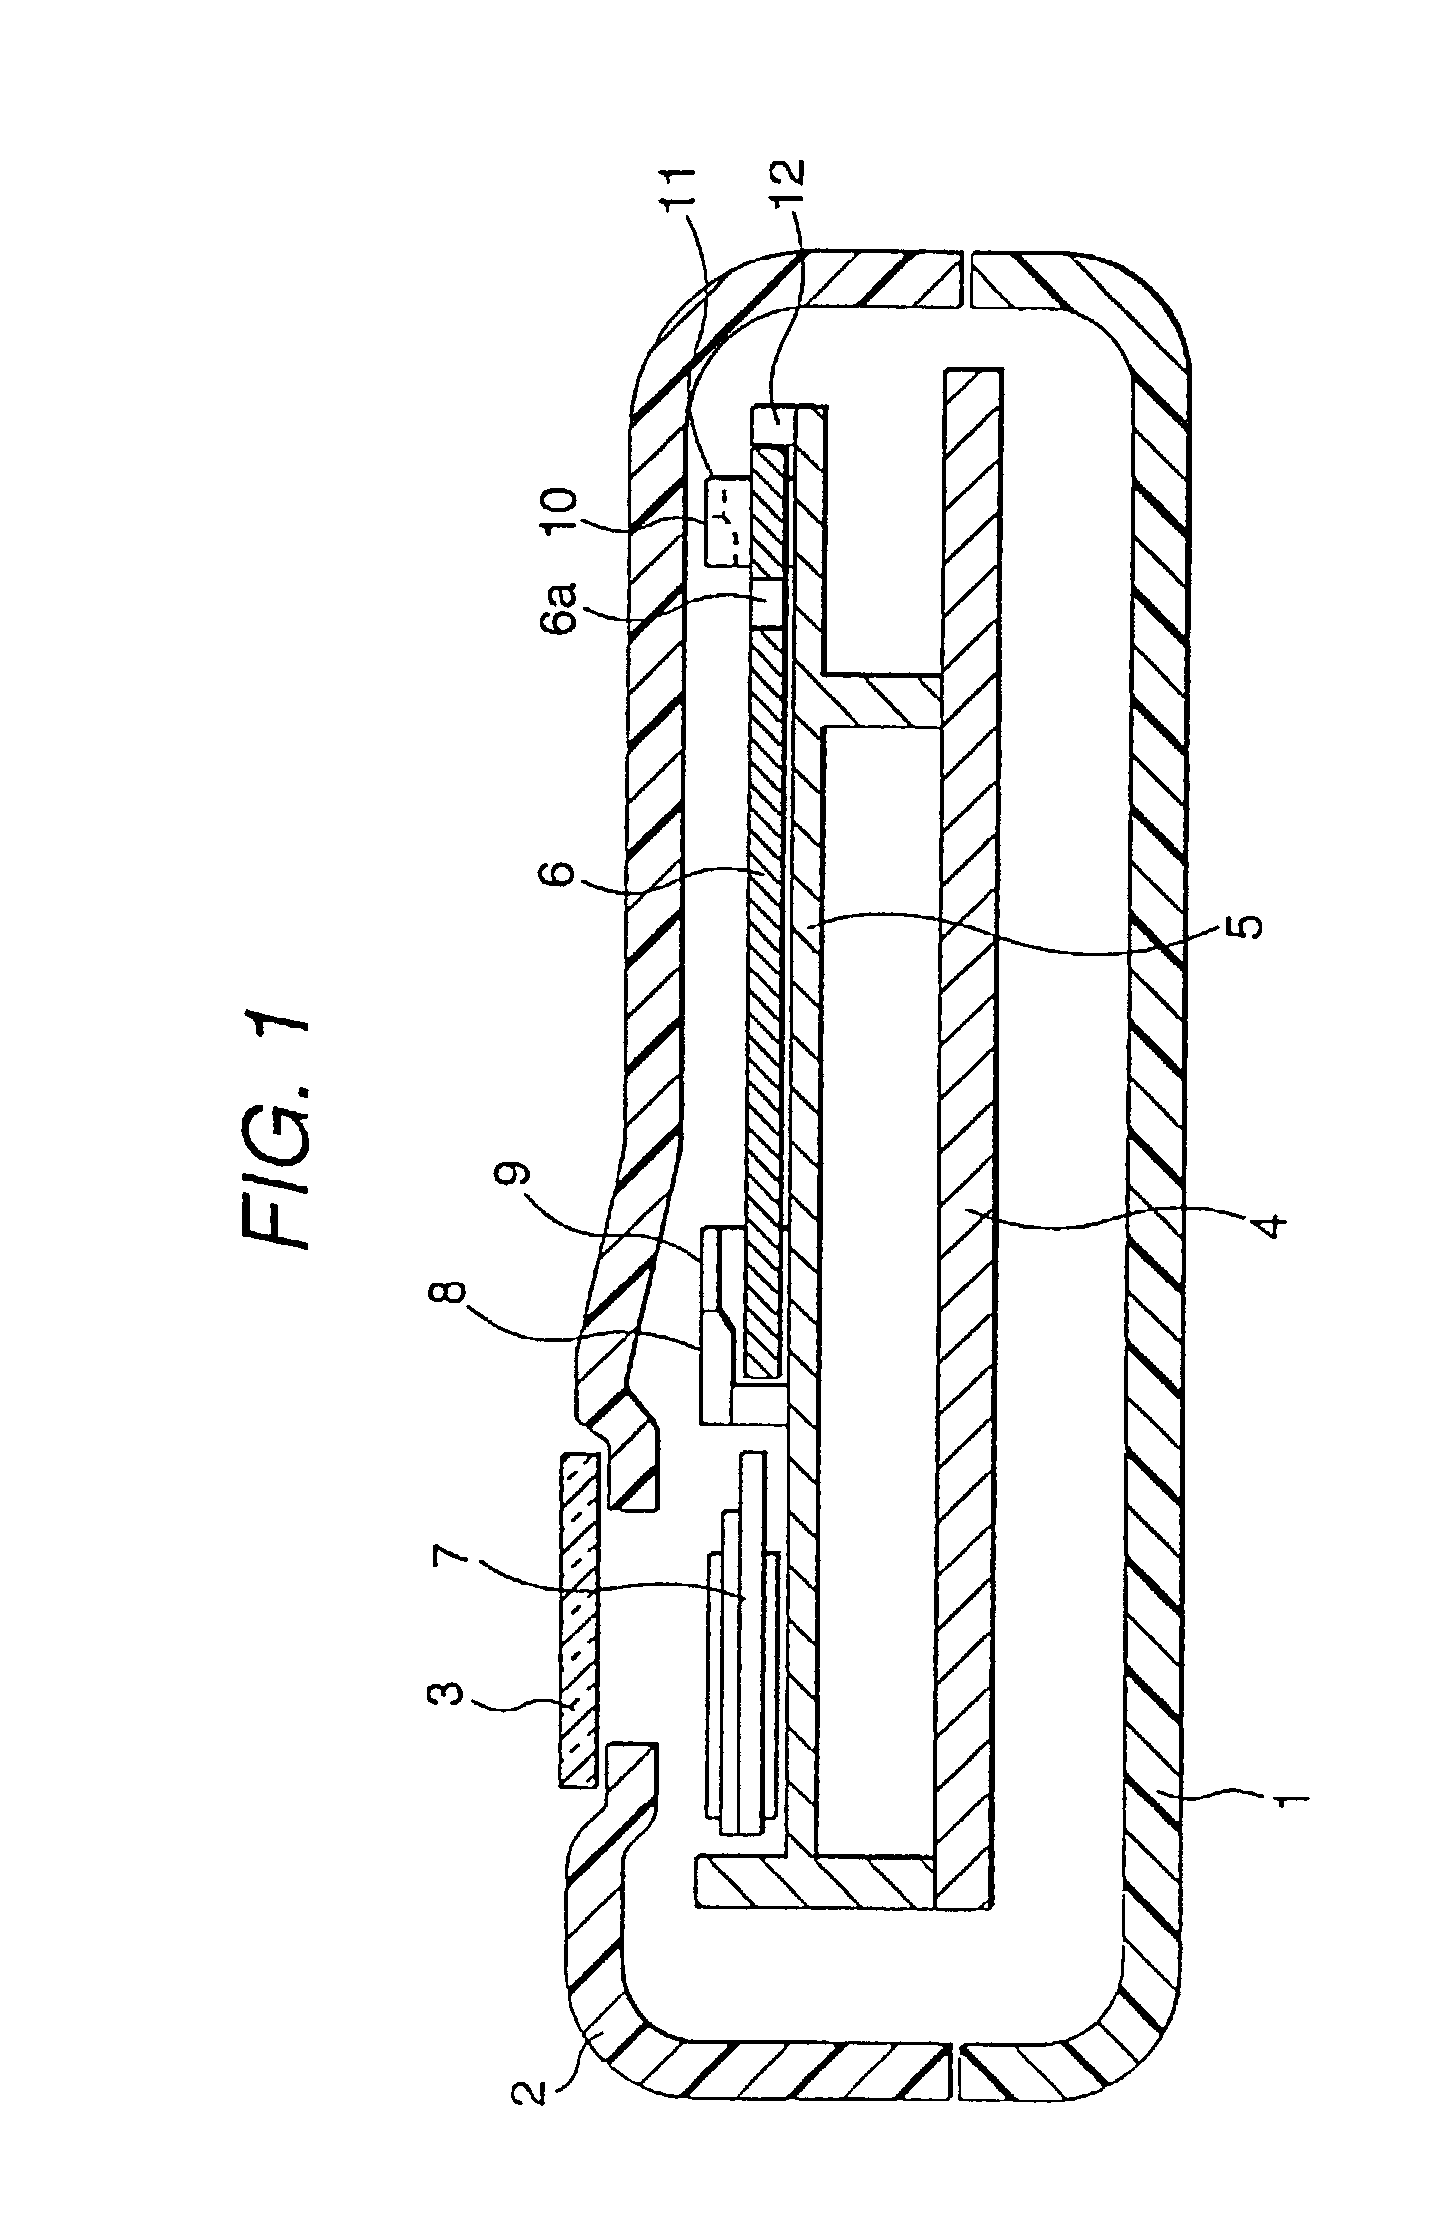 Patent Us20030007333 Printed Circuit Board Holding Structure Pcb Boardcircuit For Led Light 0011 Drawing